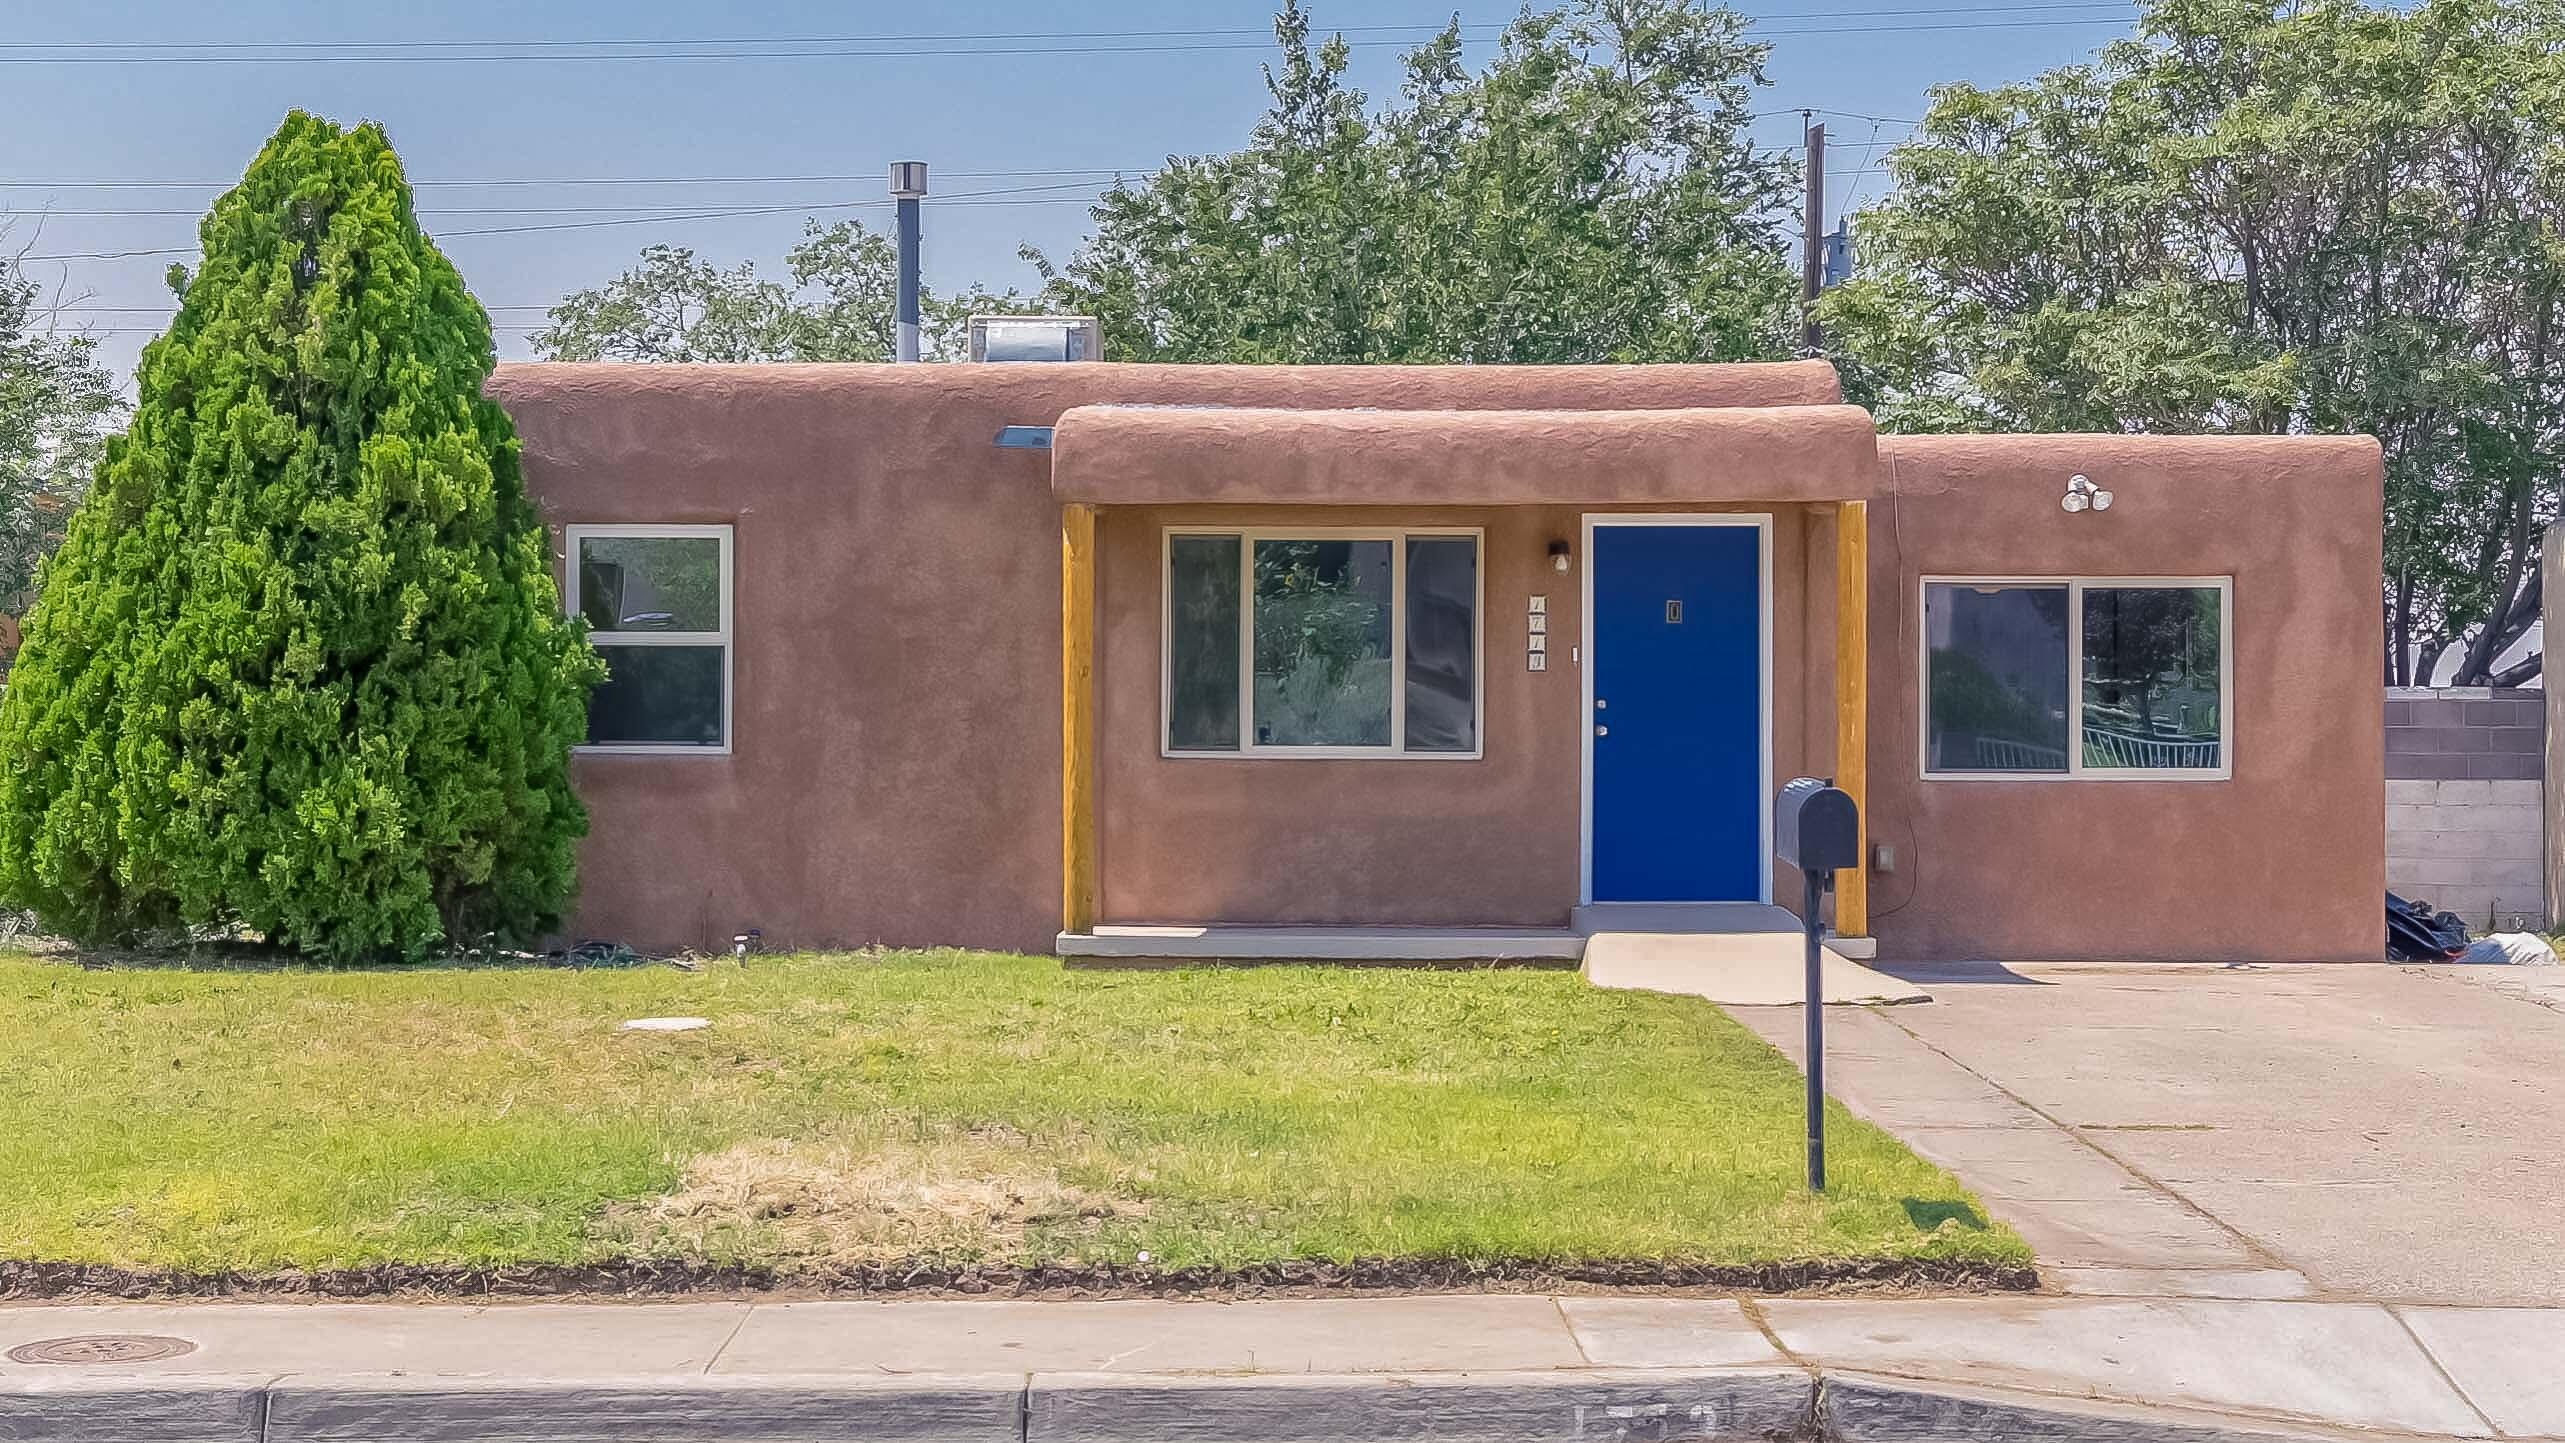 Charming Pueblo 3 bedroom home with hardwood floors and fresh paint throughout!  Classic cove ceiling in the living room.  Kitchen is spacious with refrigerator and washer/dryer included!  Upgraded, efficient windows throughout! Enjoy the outdoors in the large backyard with nice lawn and beautiful tree. Roof and Evaporative cooler replaced 2018, Stucco 2014, new water line 2016, and sewer line 2012!!!